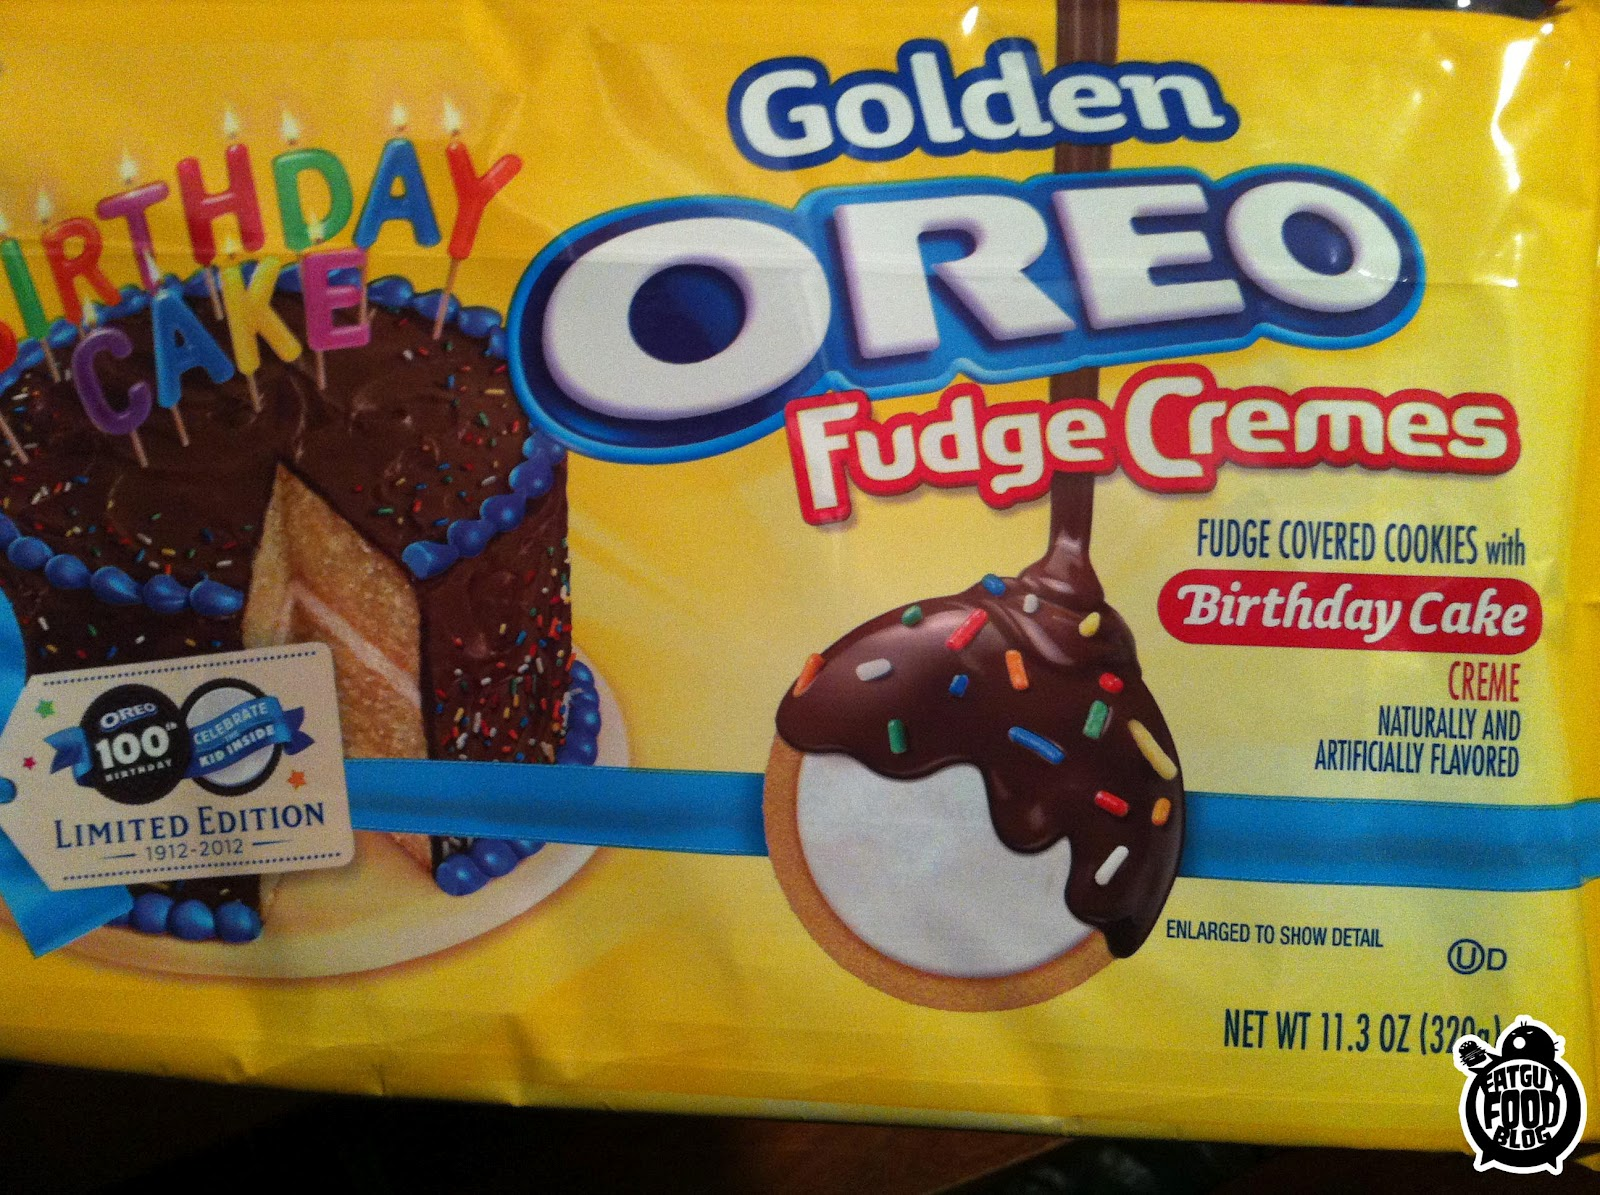 FATGUYFOODBLOG BIRTHDAY CAKE GOLDEN OREO FUDGE CREMES